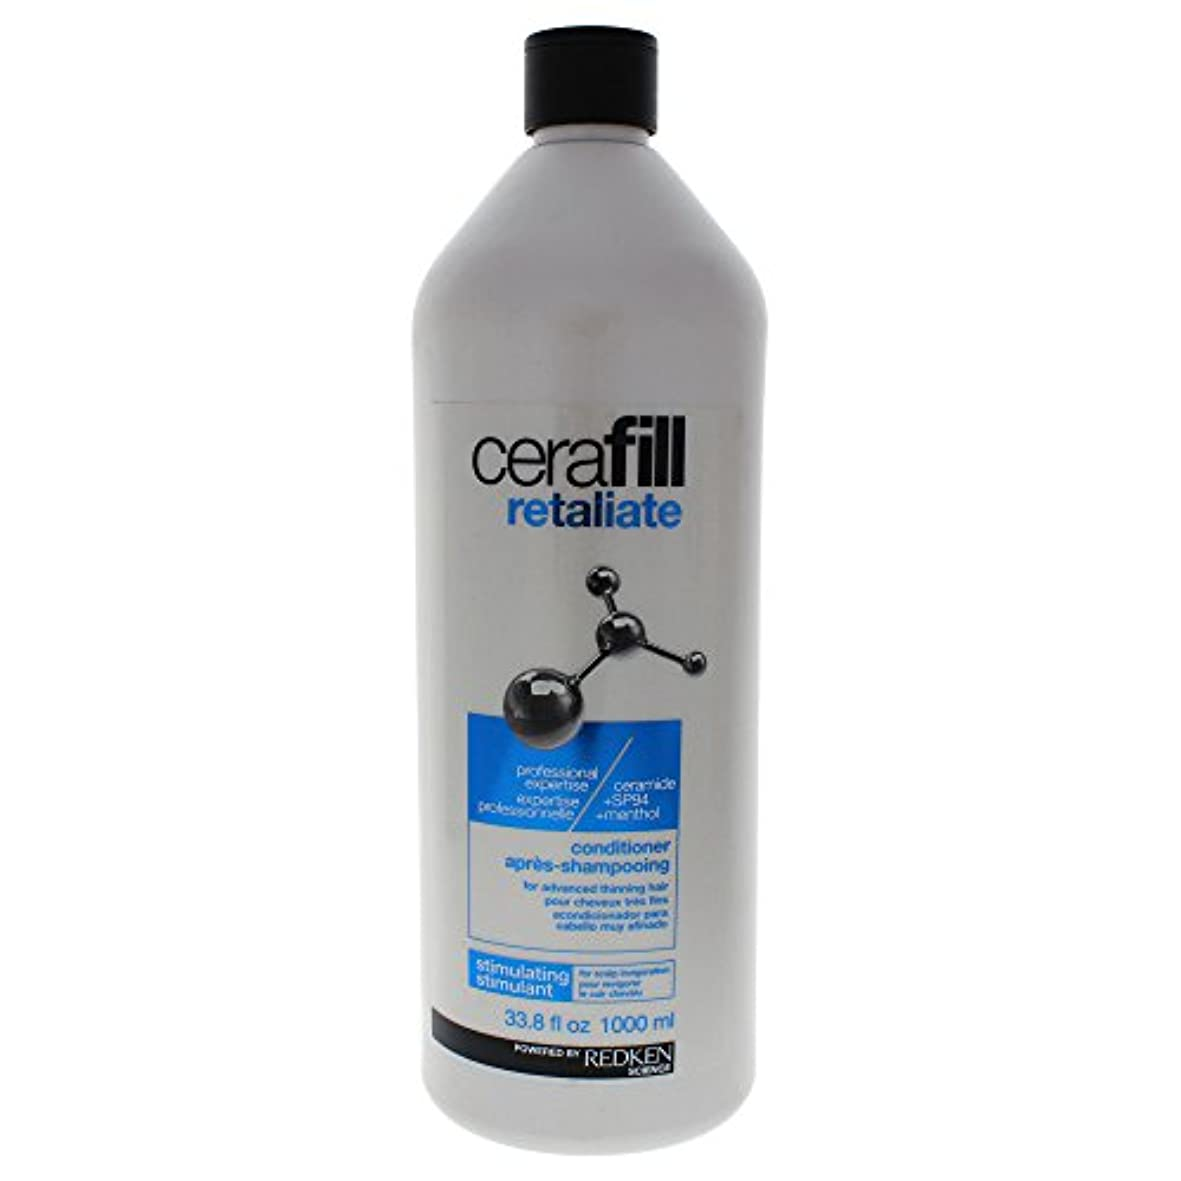 要旨ヘッジ変色するレッドケン Cerafill Retaliate Stimulating Conditioner (For Advanced Thinning Hair) 1000ml